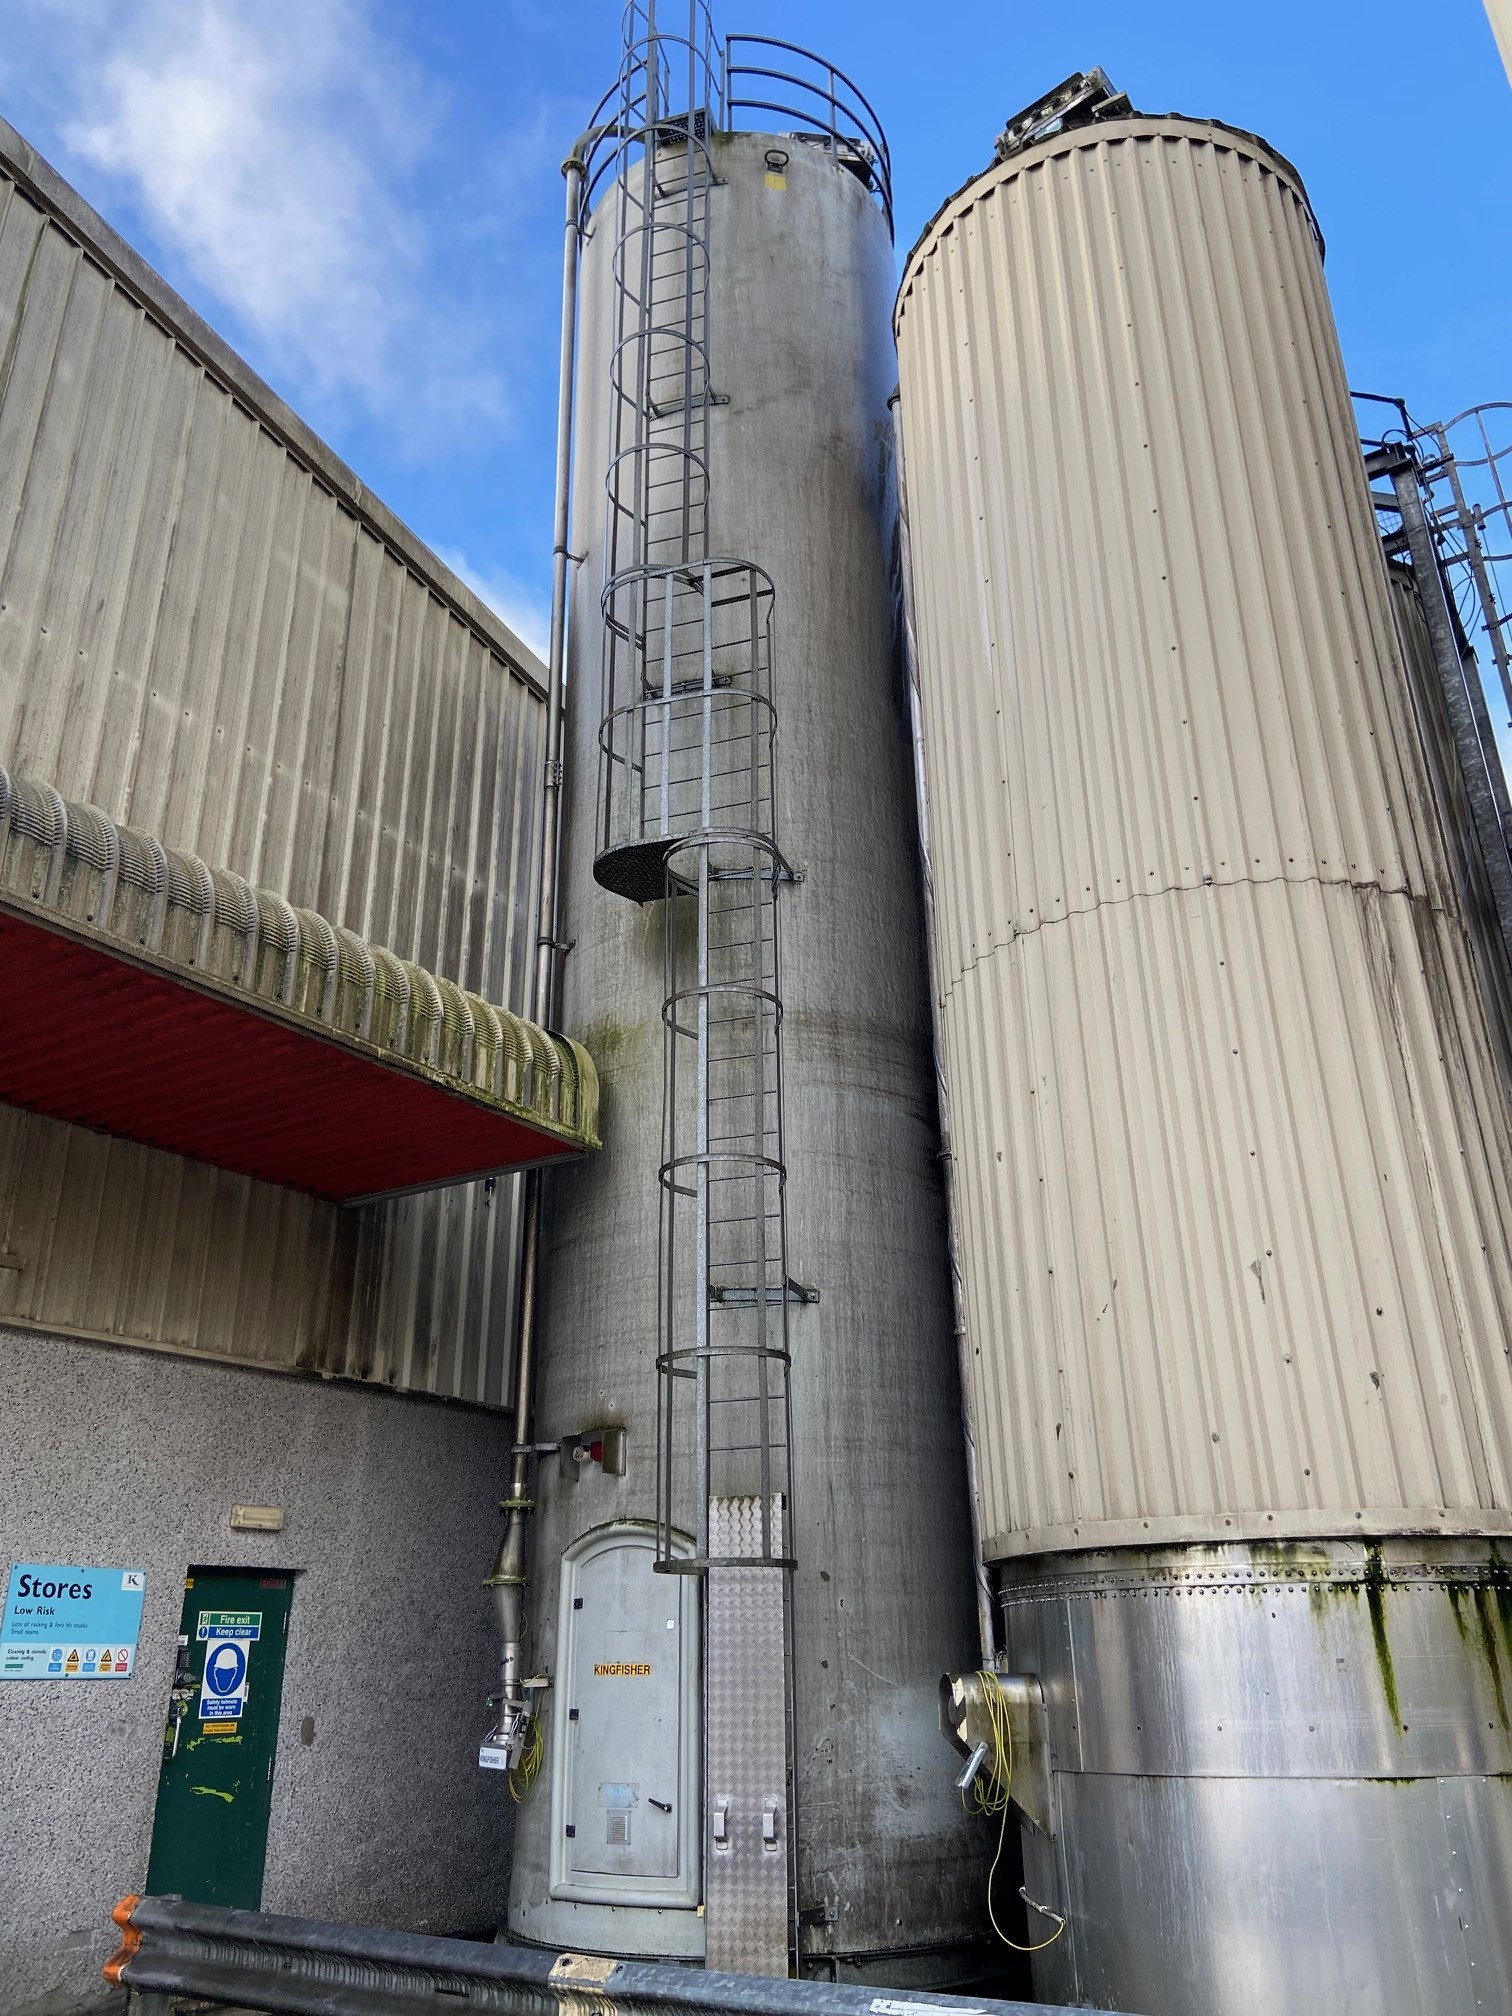 Lot 948 - Siloba, bulk storage silo (1998) Capaicty: 30 tonne; In feed, air blown, filters attached